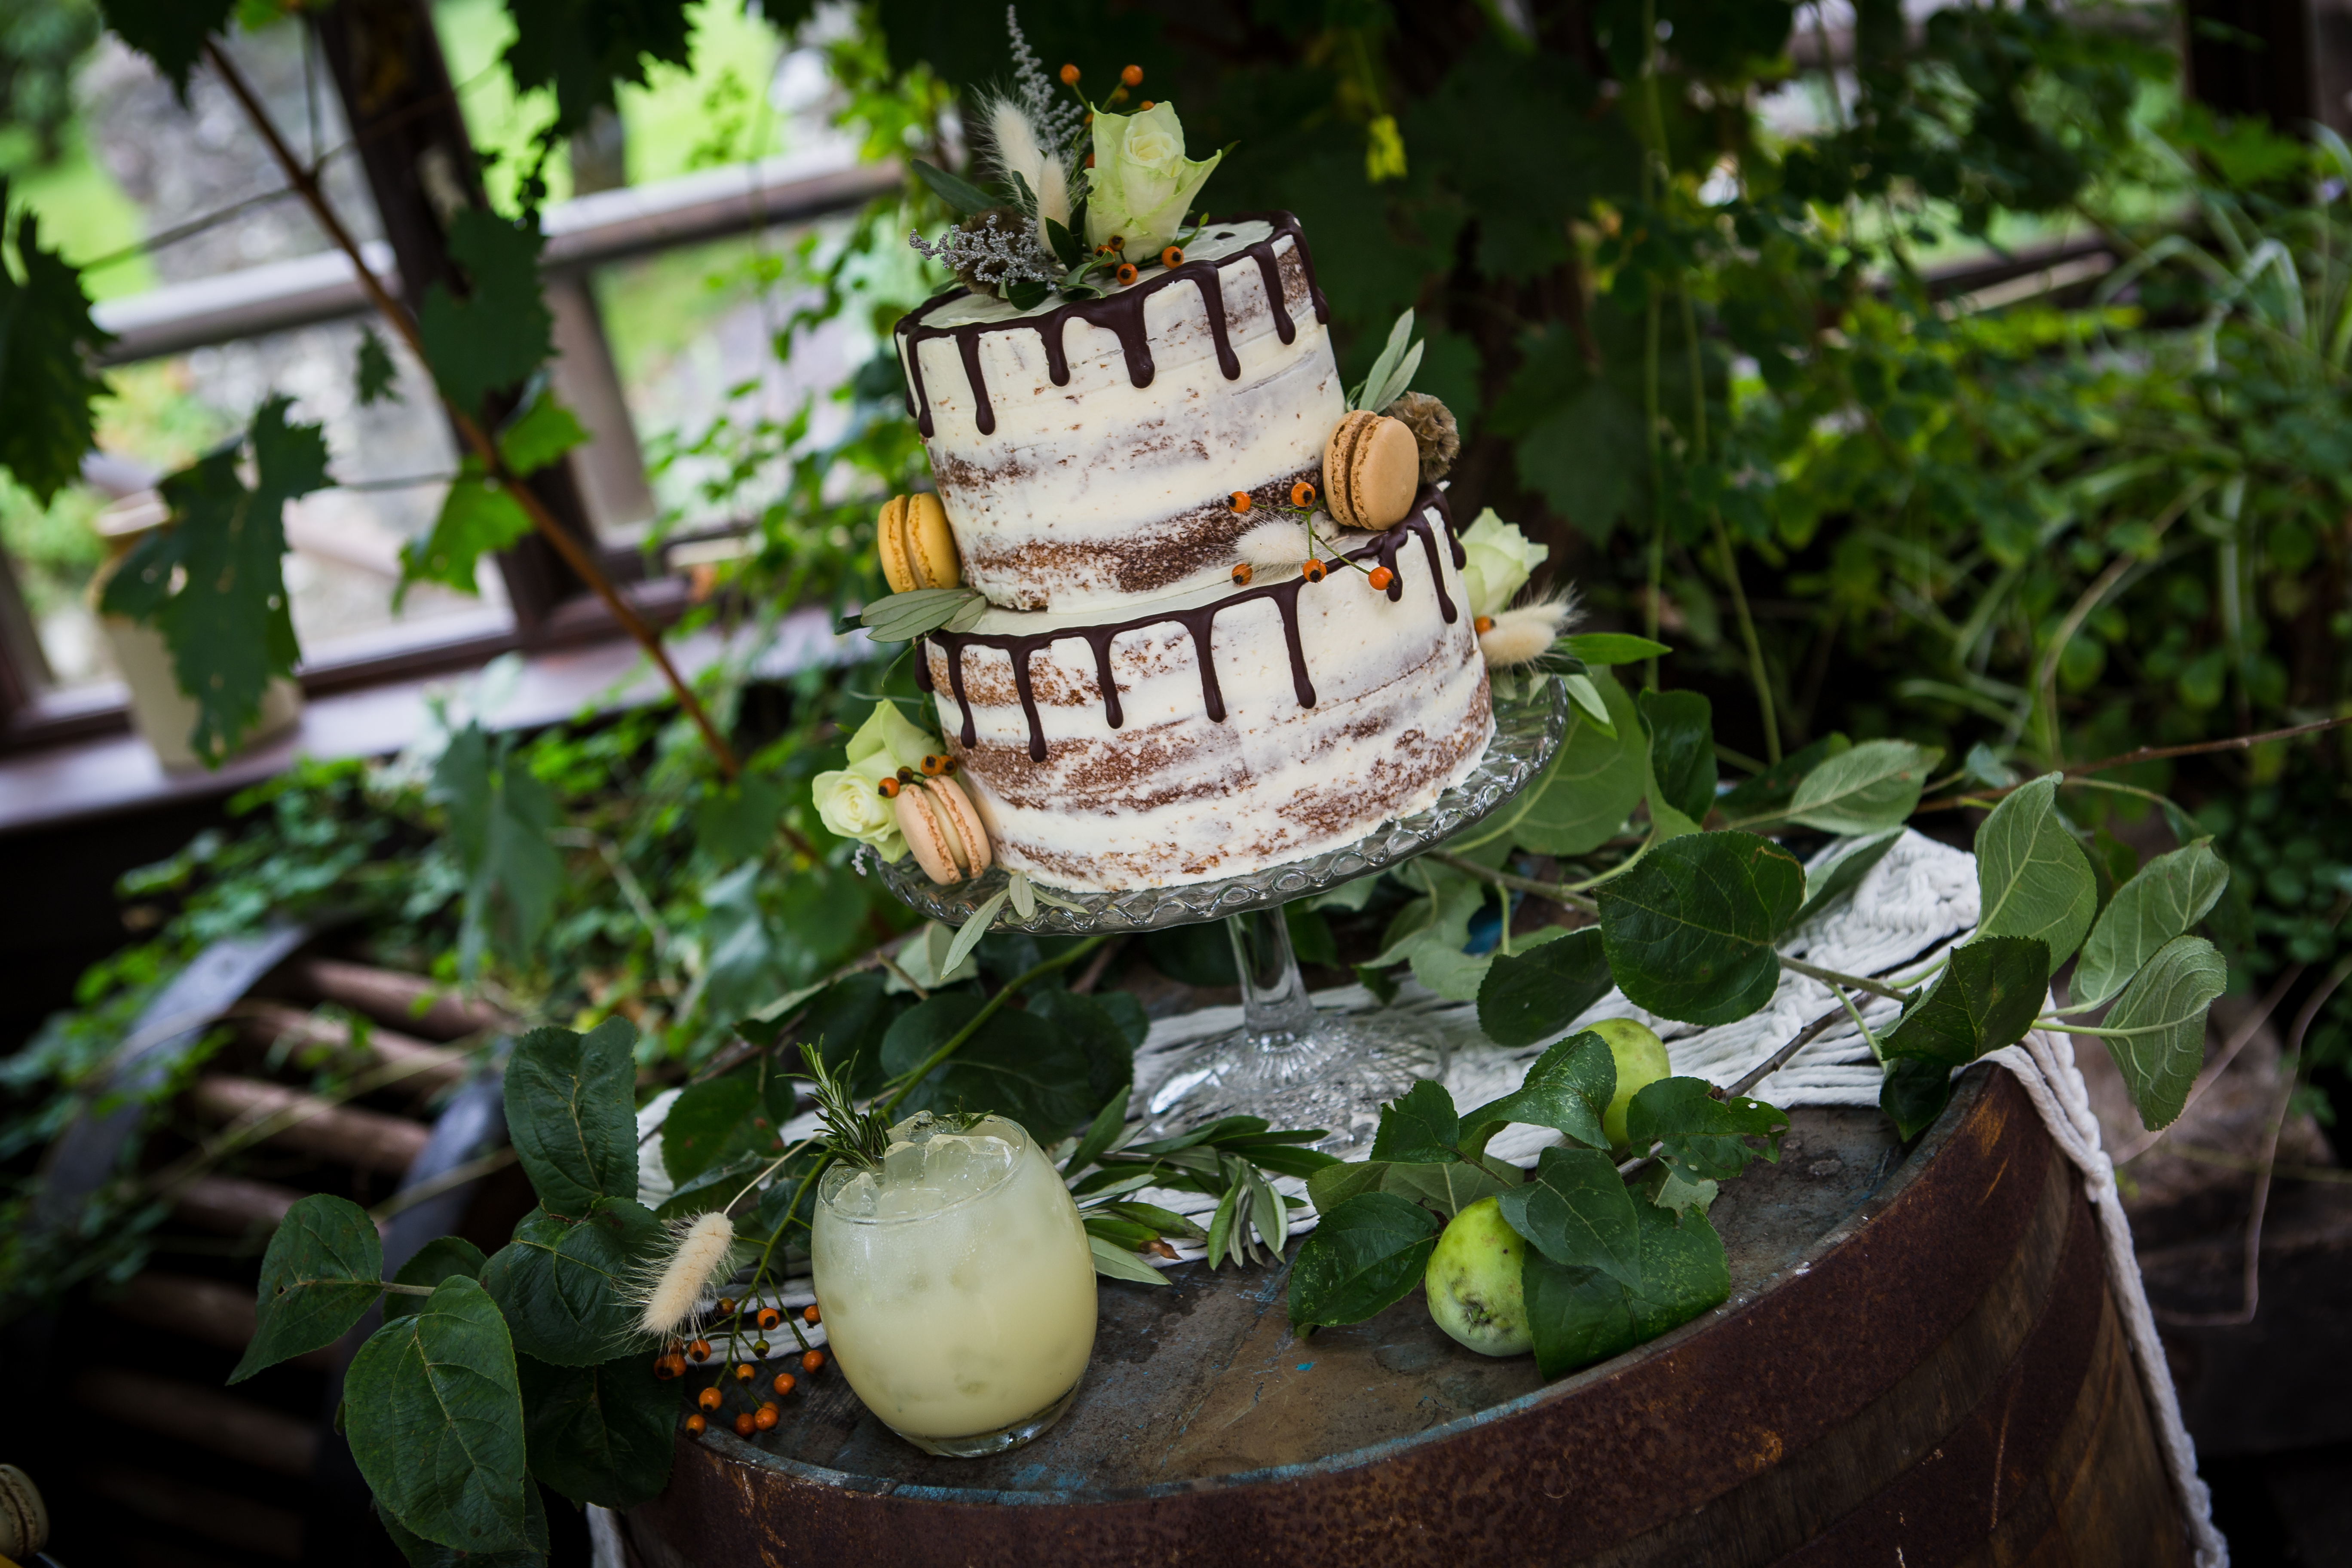 two tier semi-naked wedding cake with macaroons & drips